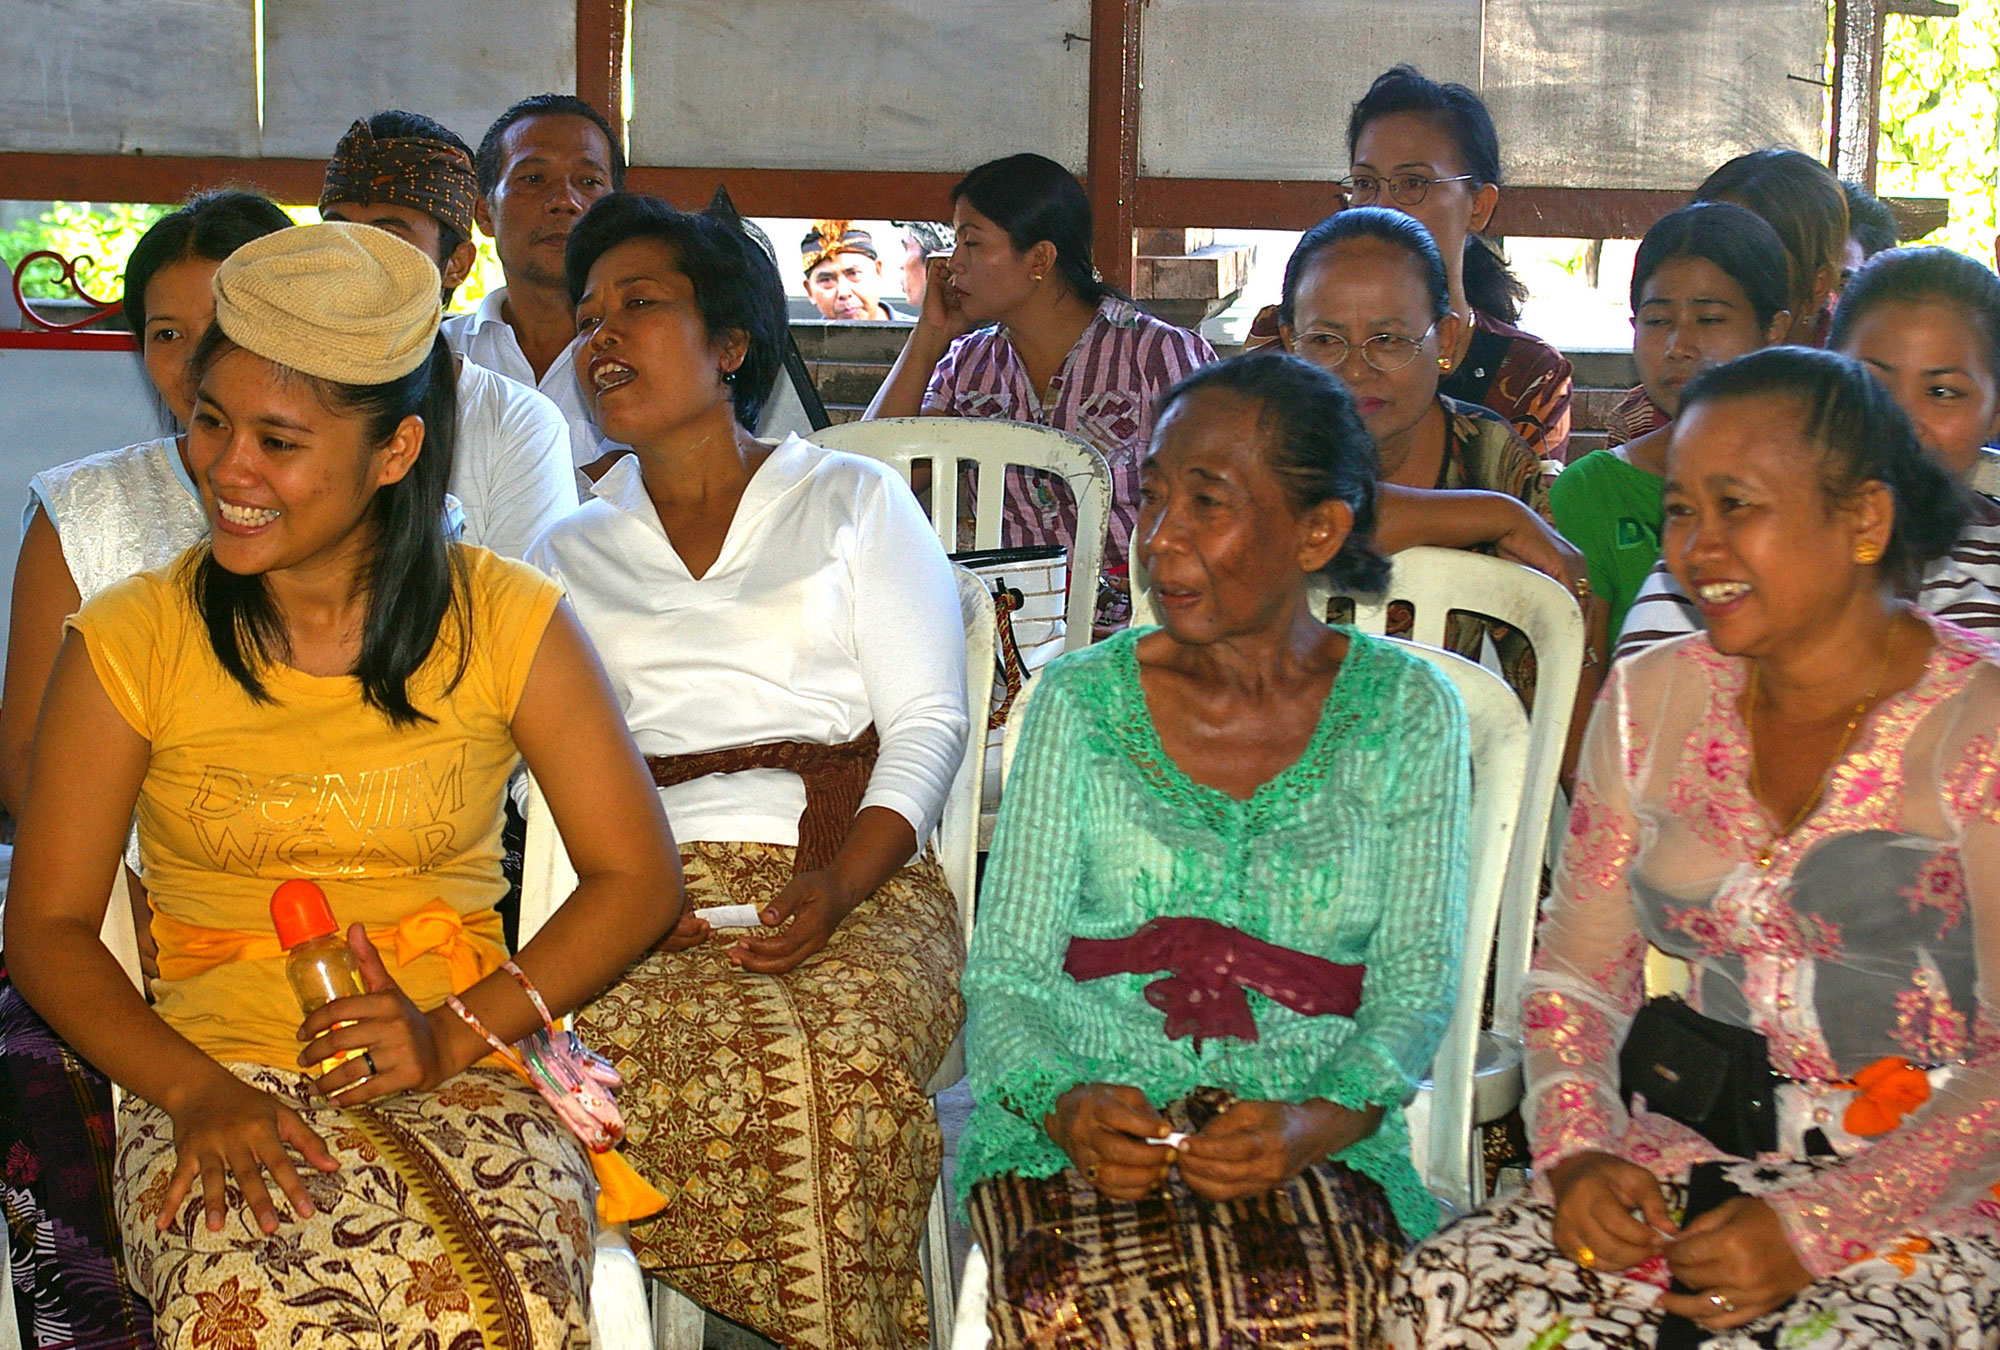 Indonesians participate in their community block grants meetings and decision-making process as part of Generasi, 2007 (Komar | Shutterstock.com)